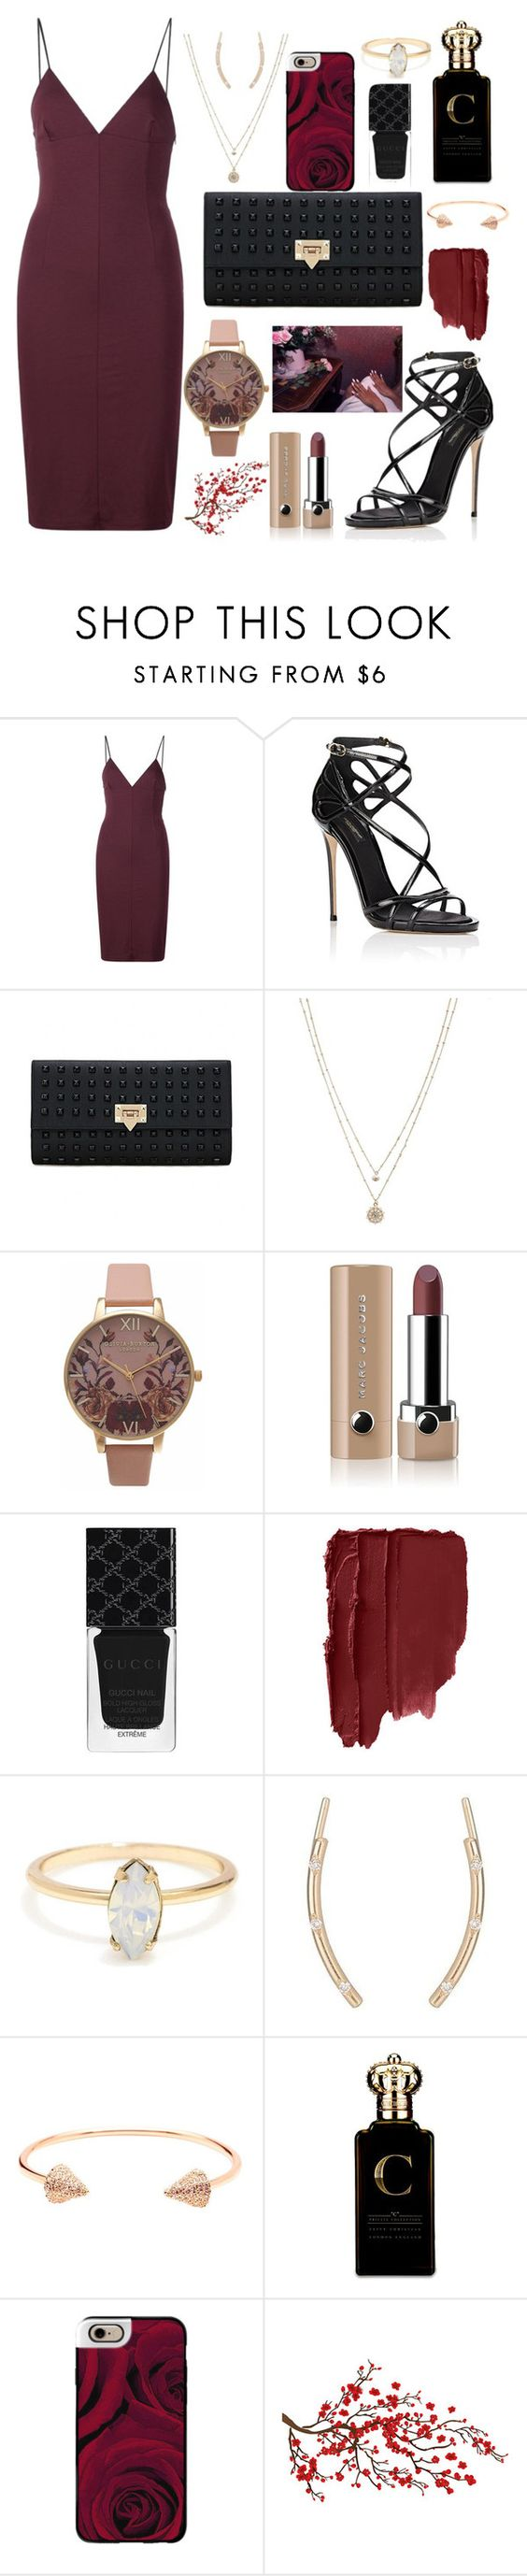 """""""Kyra"""" by anishagarner ❤ liked on Polyvore featuring T By Alexander Wang, Dolce&Gabbana, LC Lauren Conrad, Olivia Burton, Marc Jacobs, Gucci, CC SKYE, Clive Christian, Casetify and girlsnightout"""